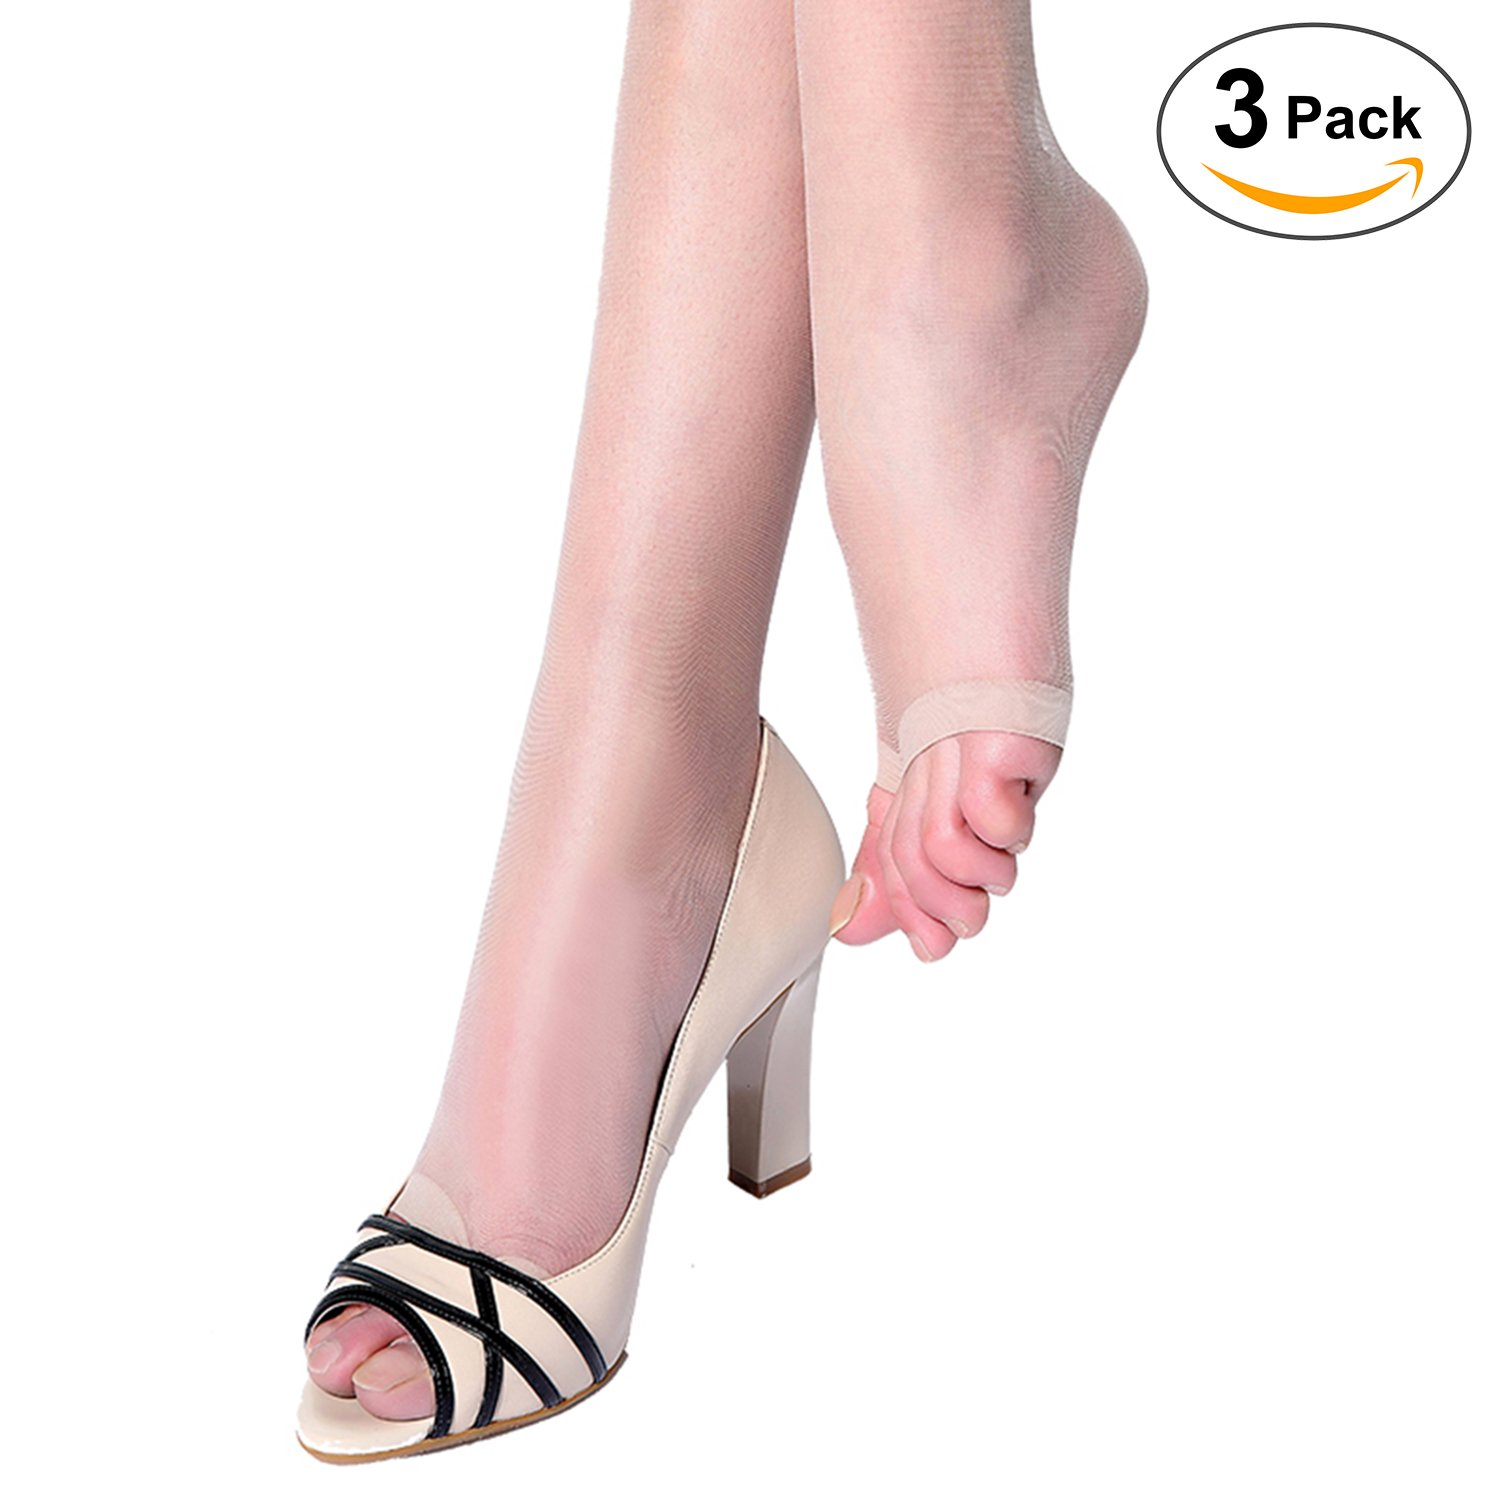 Womens Open Toe Pantyhose 3 pack Ultra Soft Stirrup Sheer Stockings T crotch Tights(Beige)